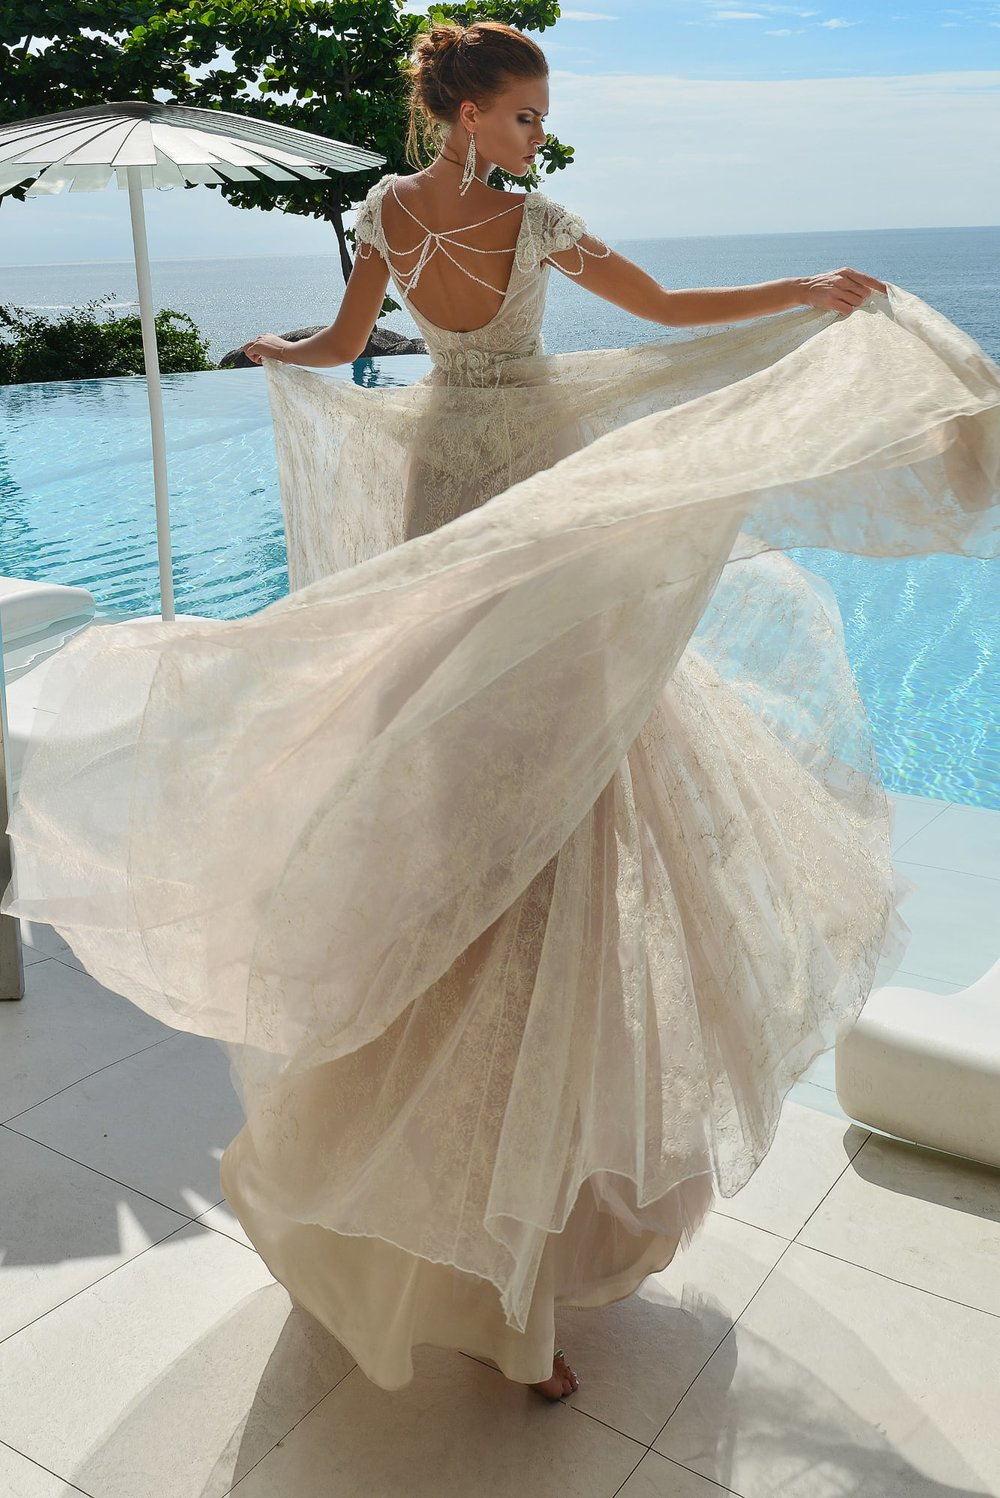 GRAZGINA wedding dress $800